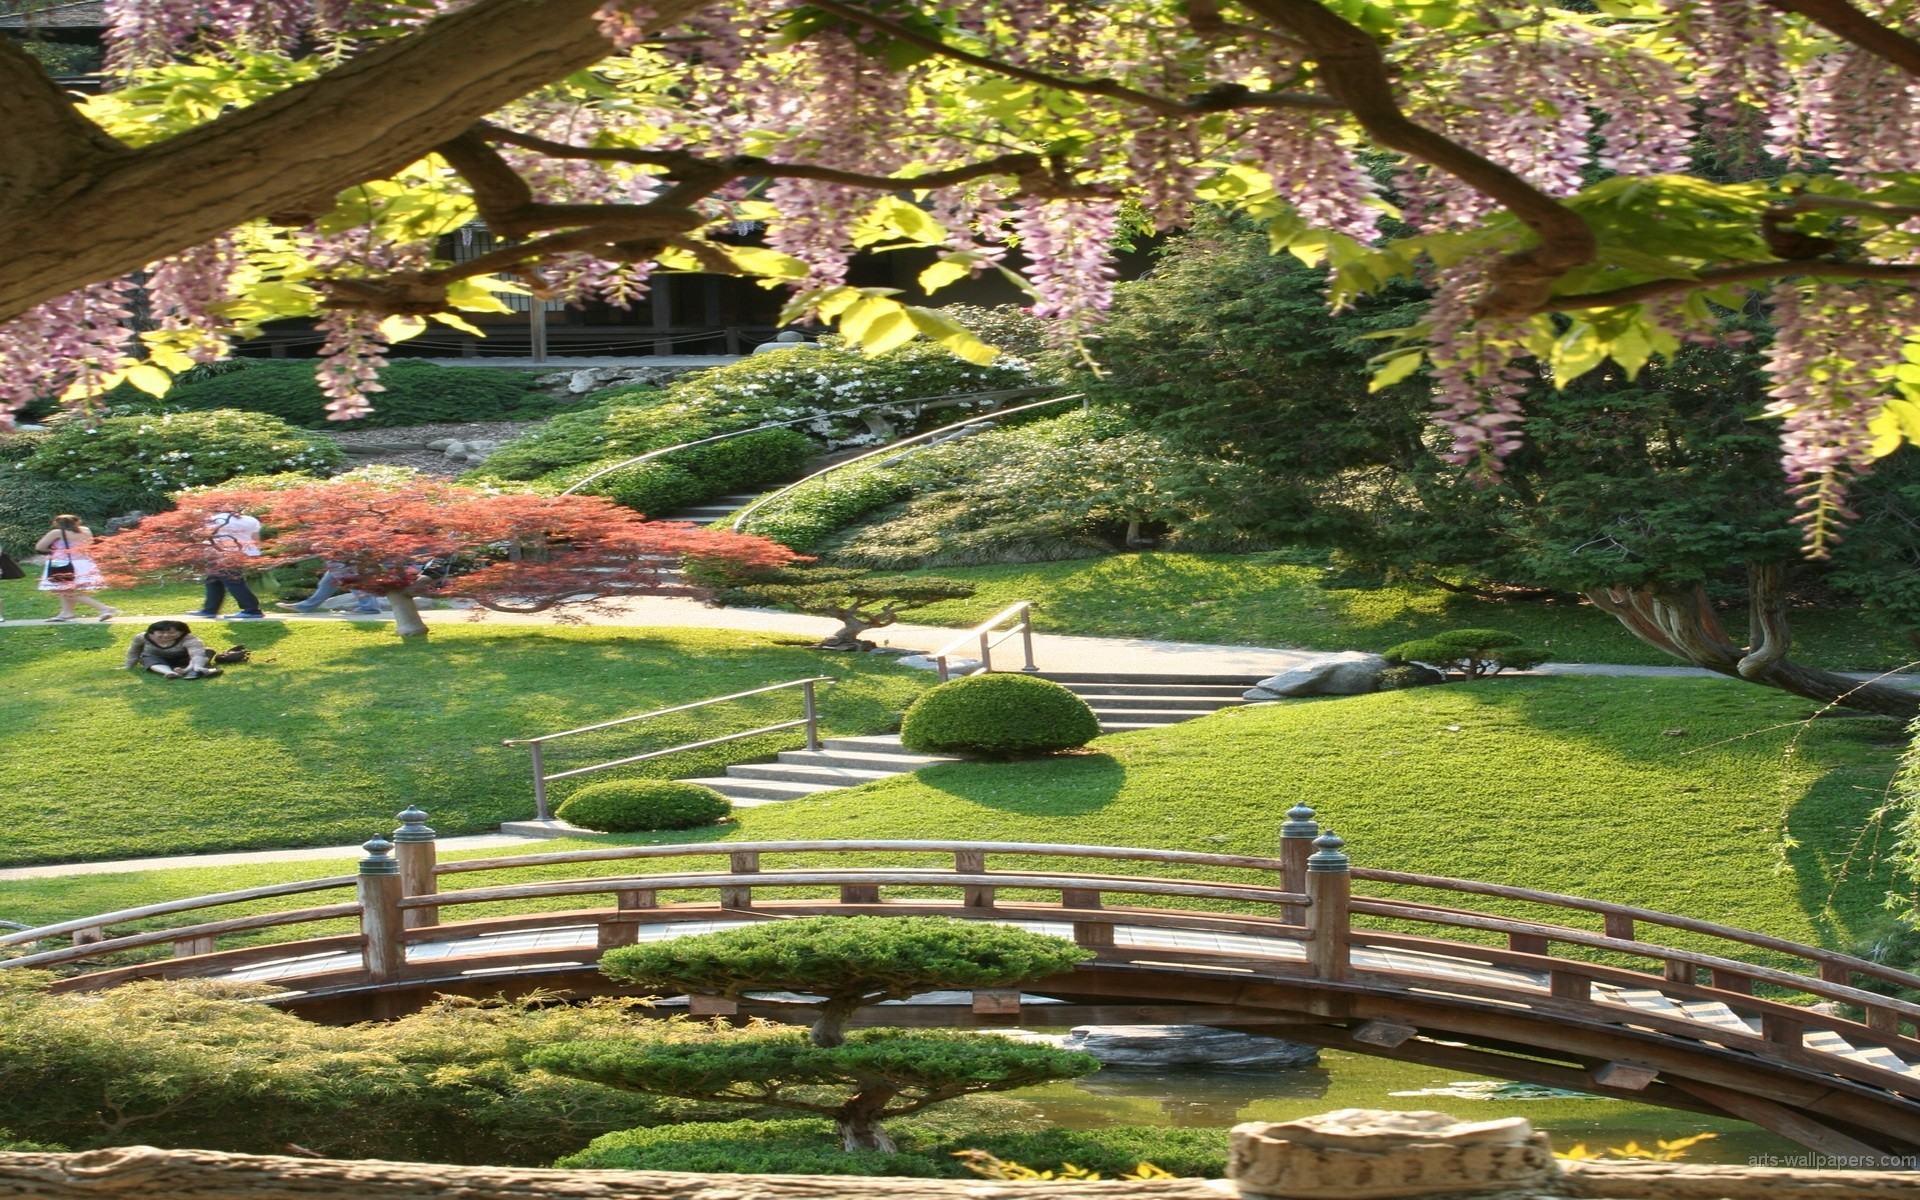 1920x1200 Japanese Garden Desktop Wallpaper Wallpapersafari With Background